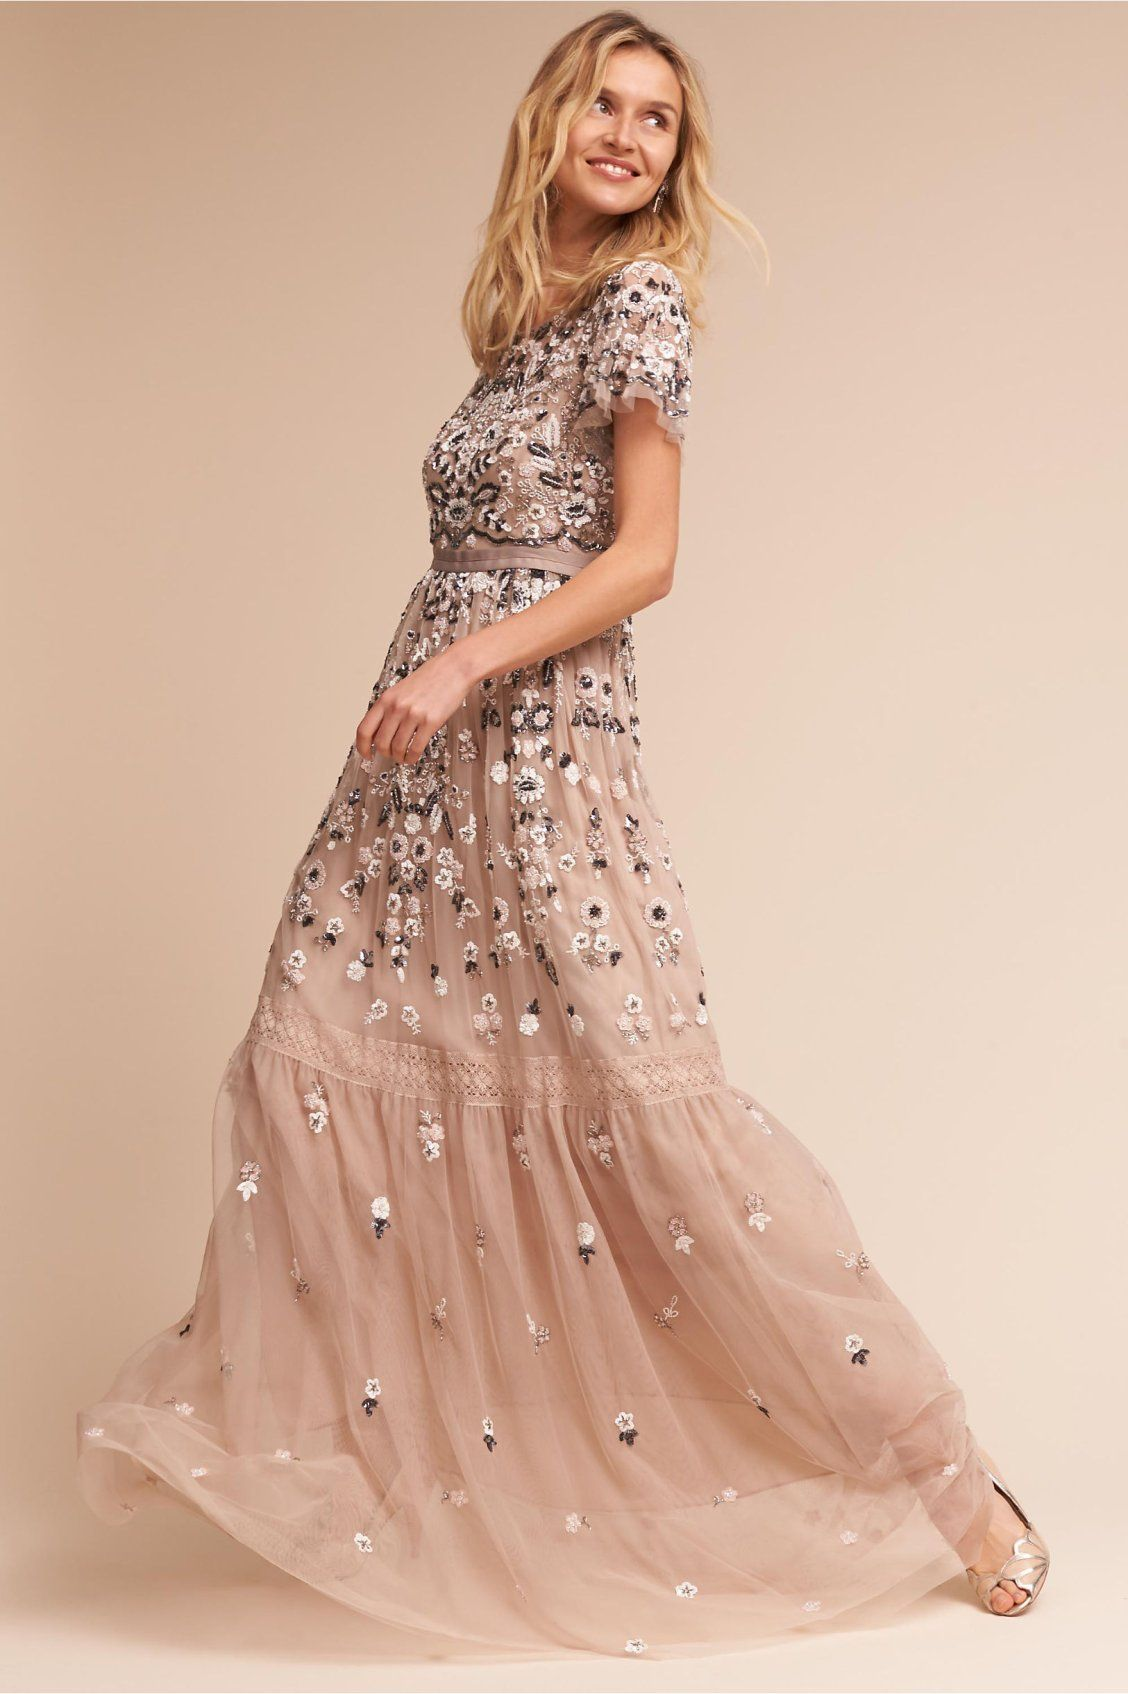 Wear to wedding dresses  Everley Gown from BHLDN  Evening Wear Dresses and Gowns